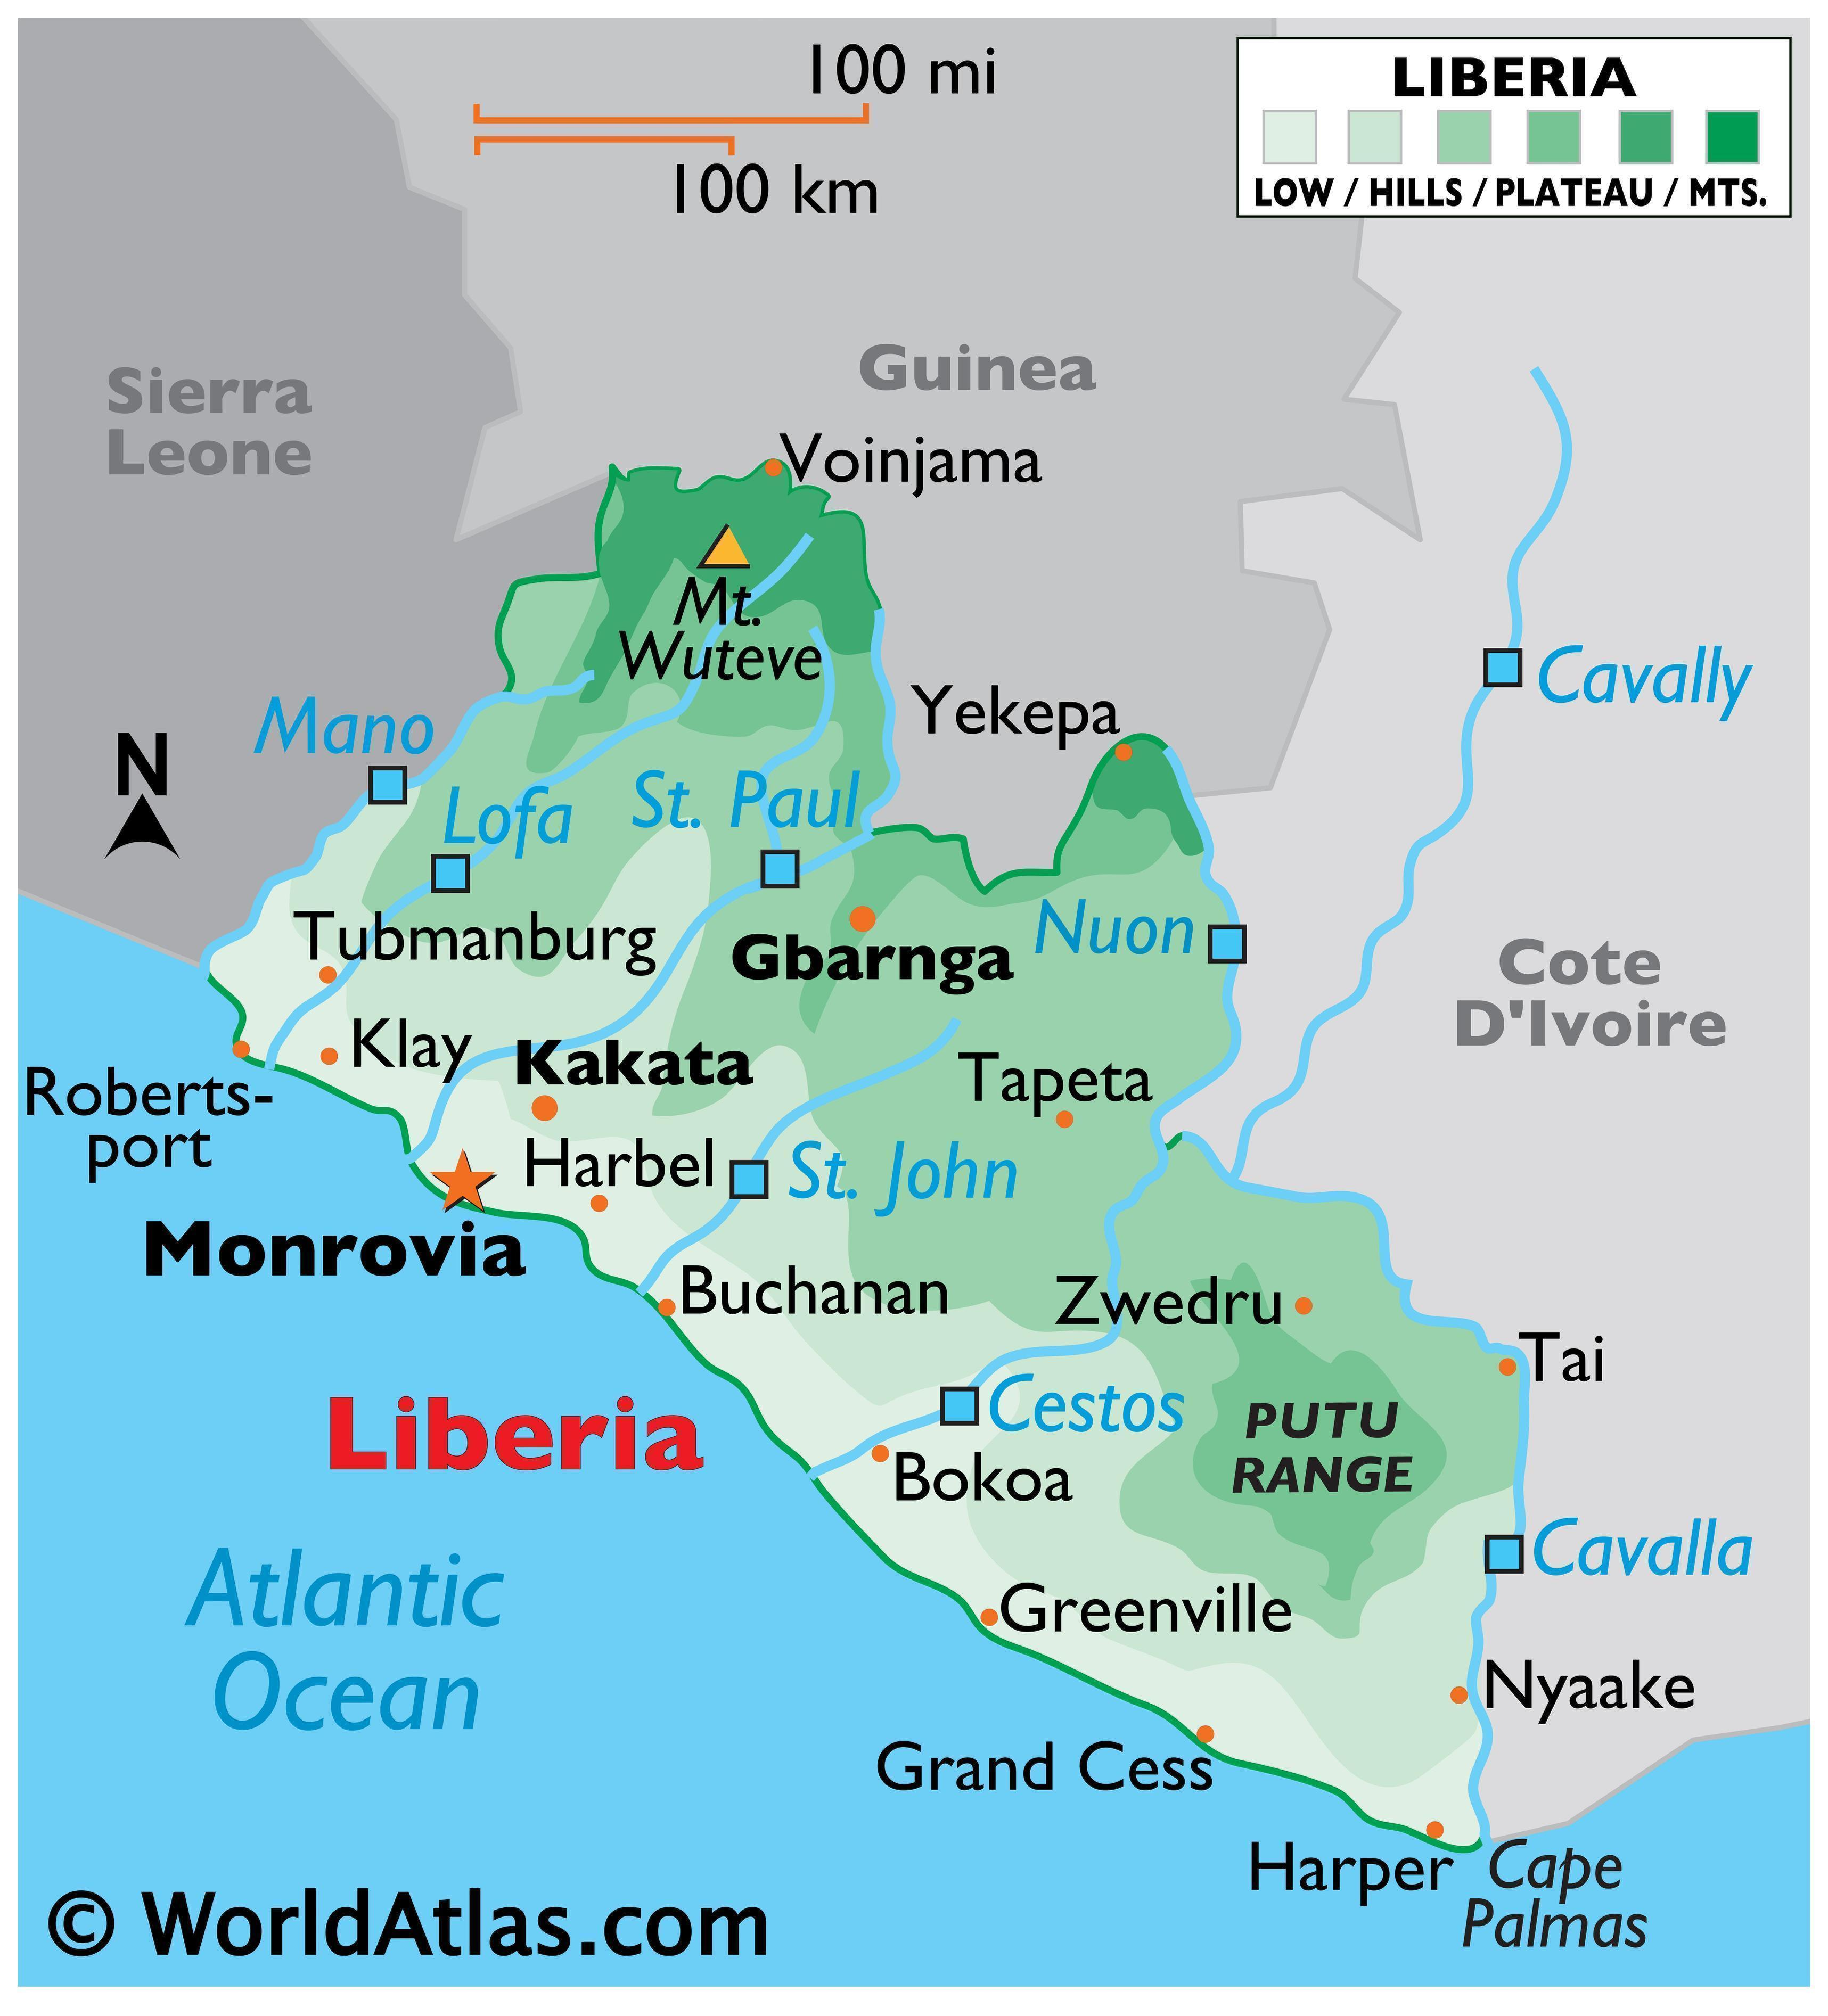 Physical Map of Liberia displaying state boundaries, relief, major rivers, Mount Witeve, and major cities.